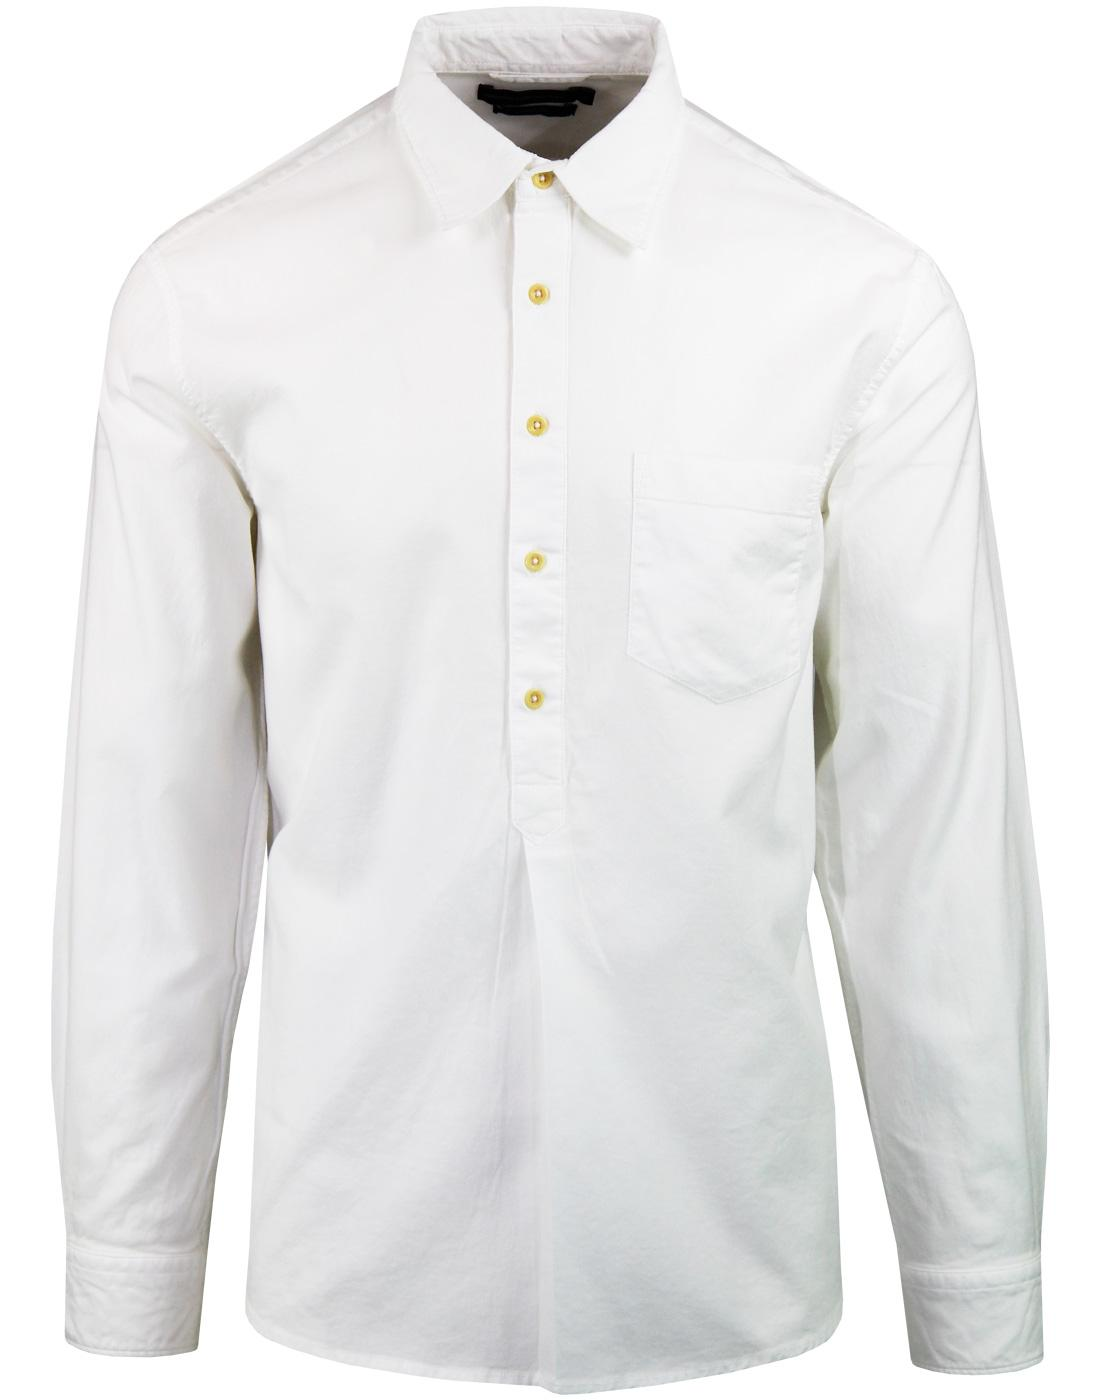 FRENCH CONNECTION Mod Pique Shirting Polo Top (W)